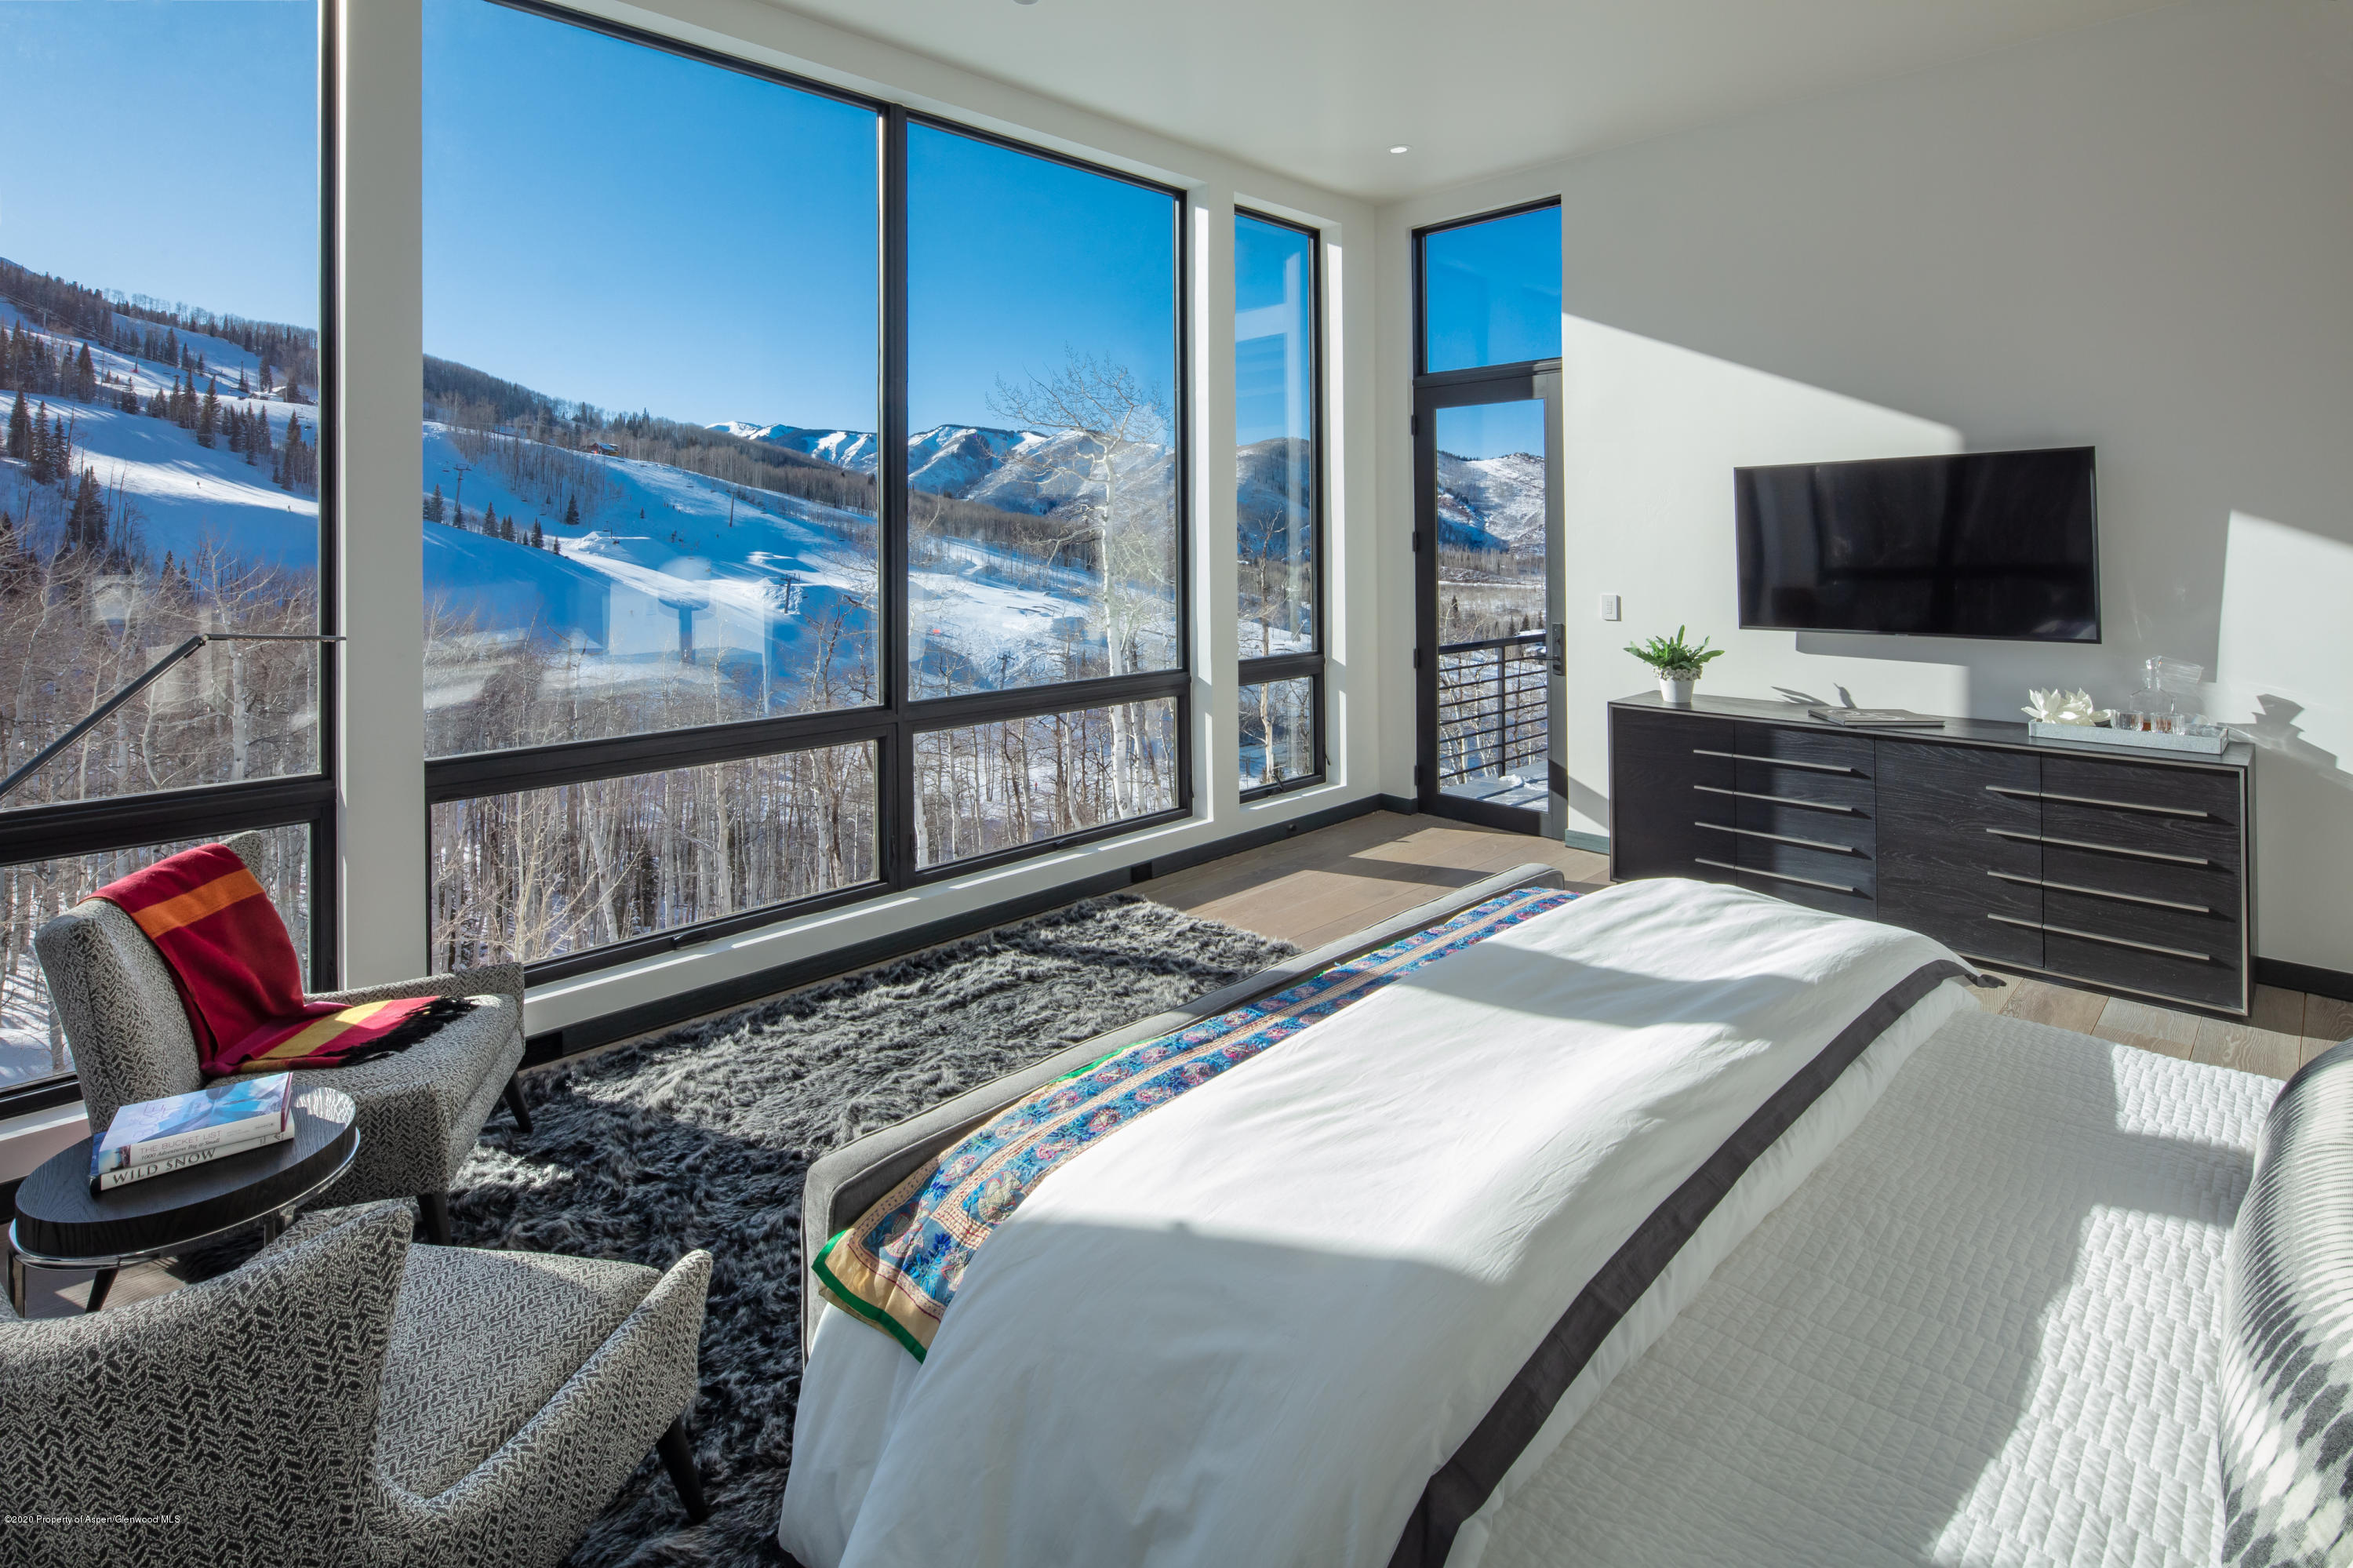 25 Janss Lane - Snowmass Village, Colorado